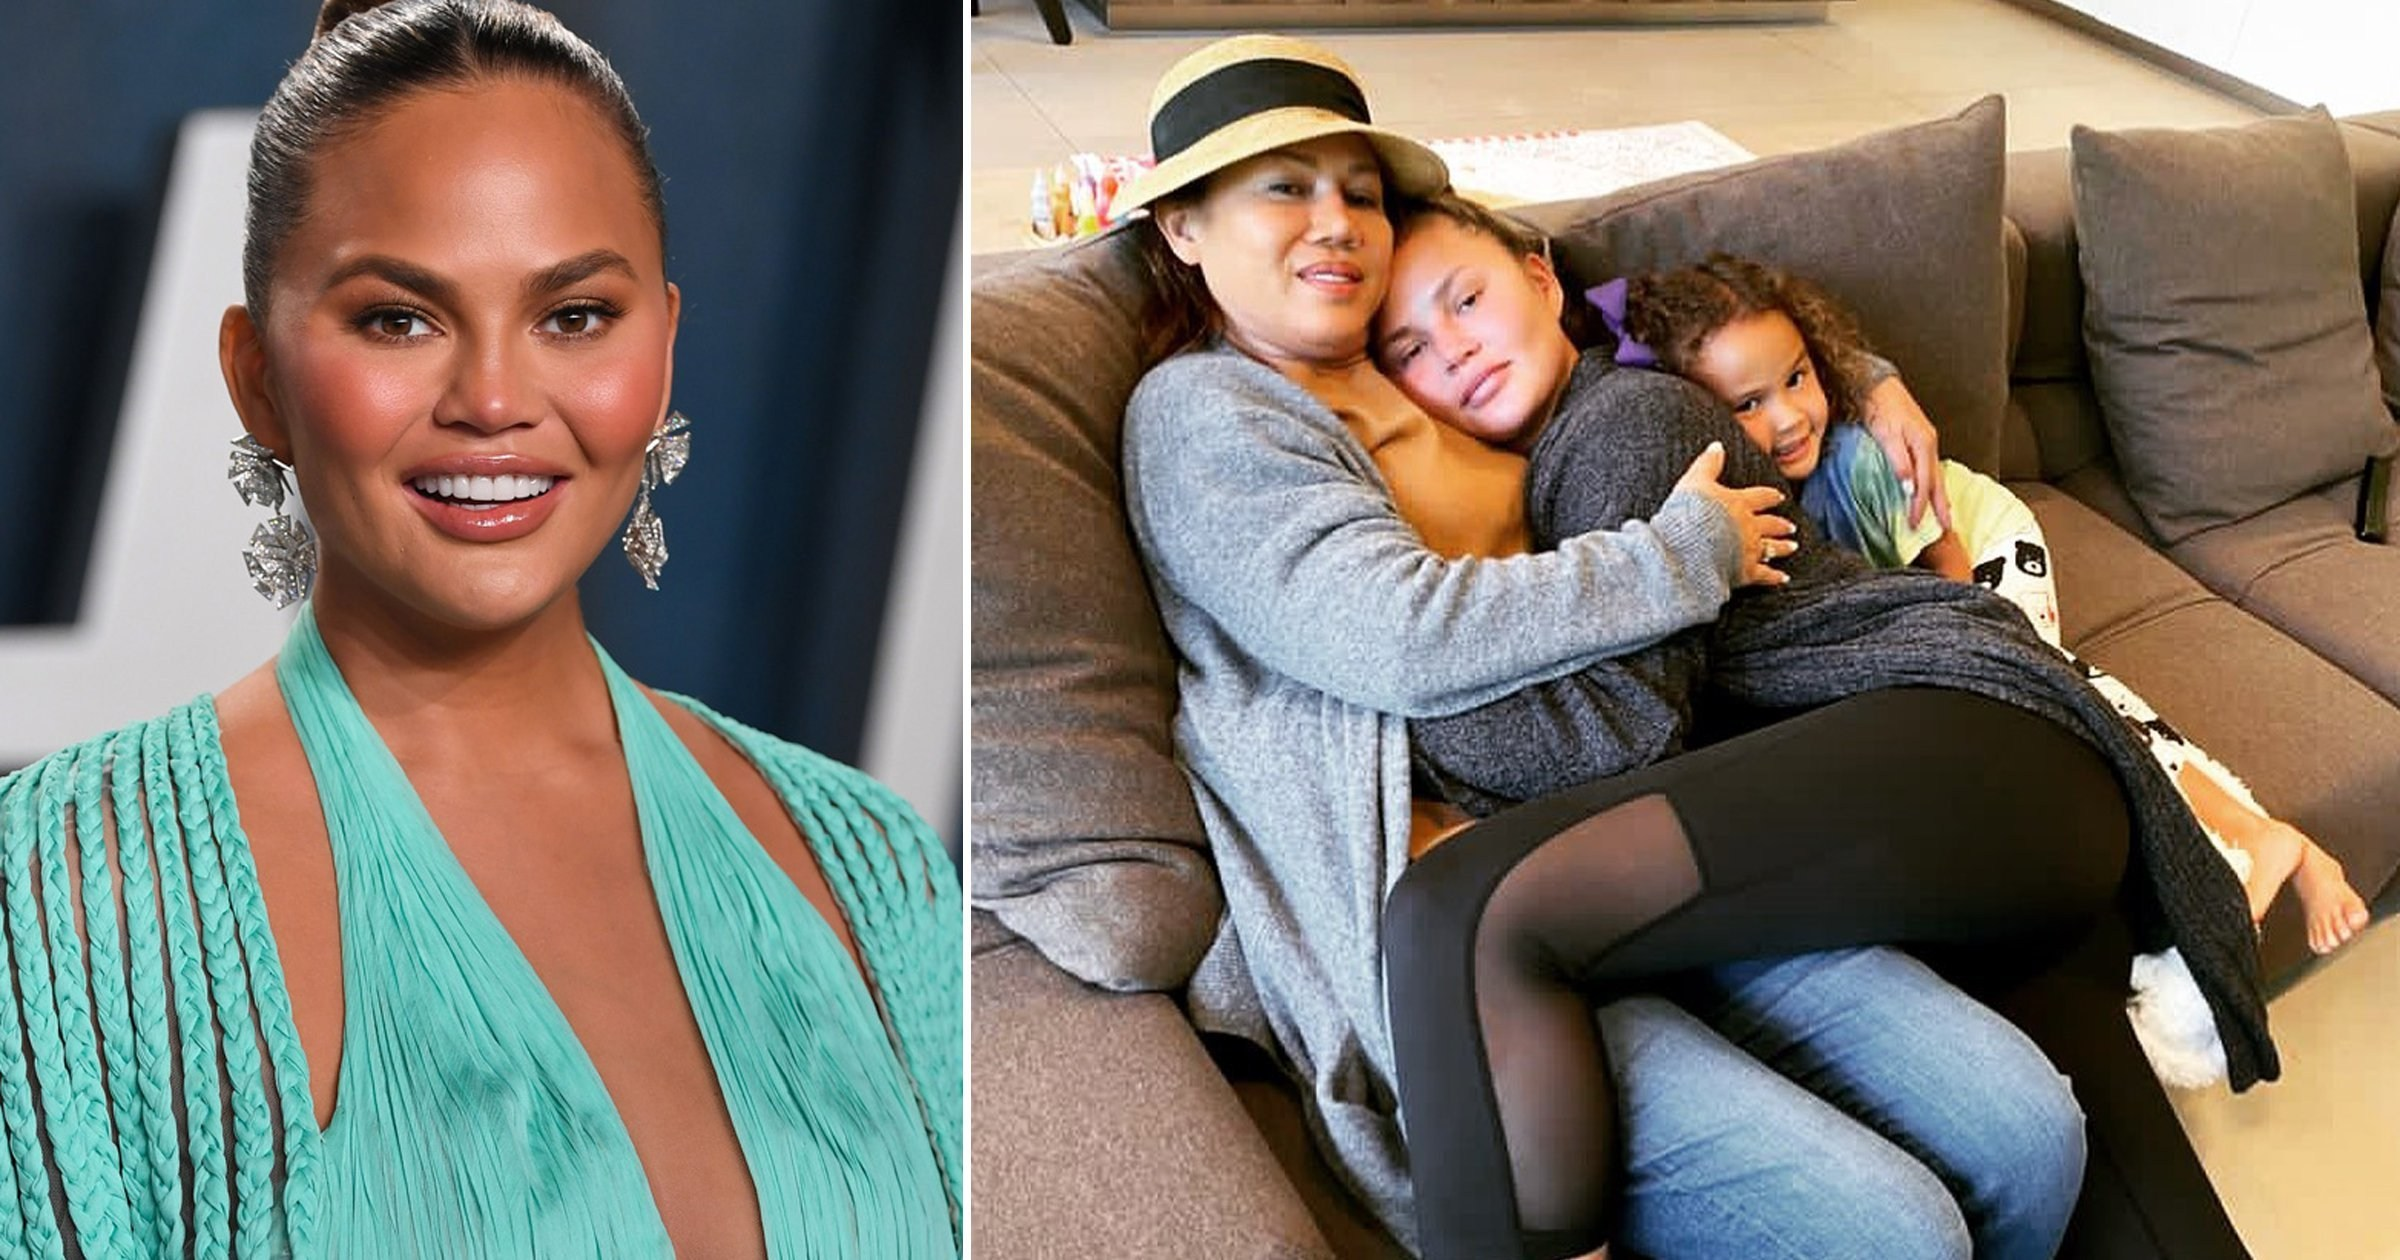 Chrissy Teigen promises to share story of 'hardest four days of her life' as she cuddles up to mum